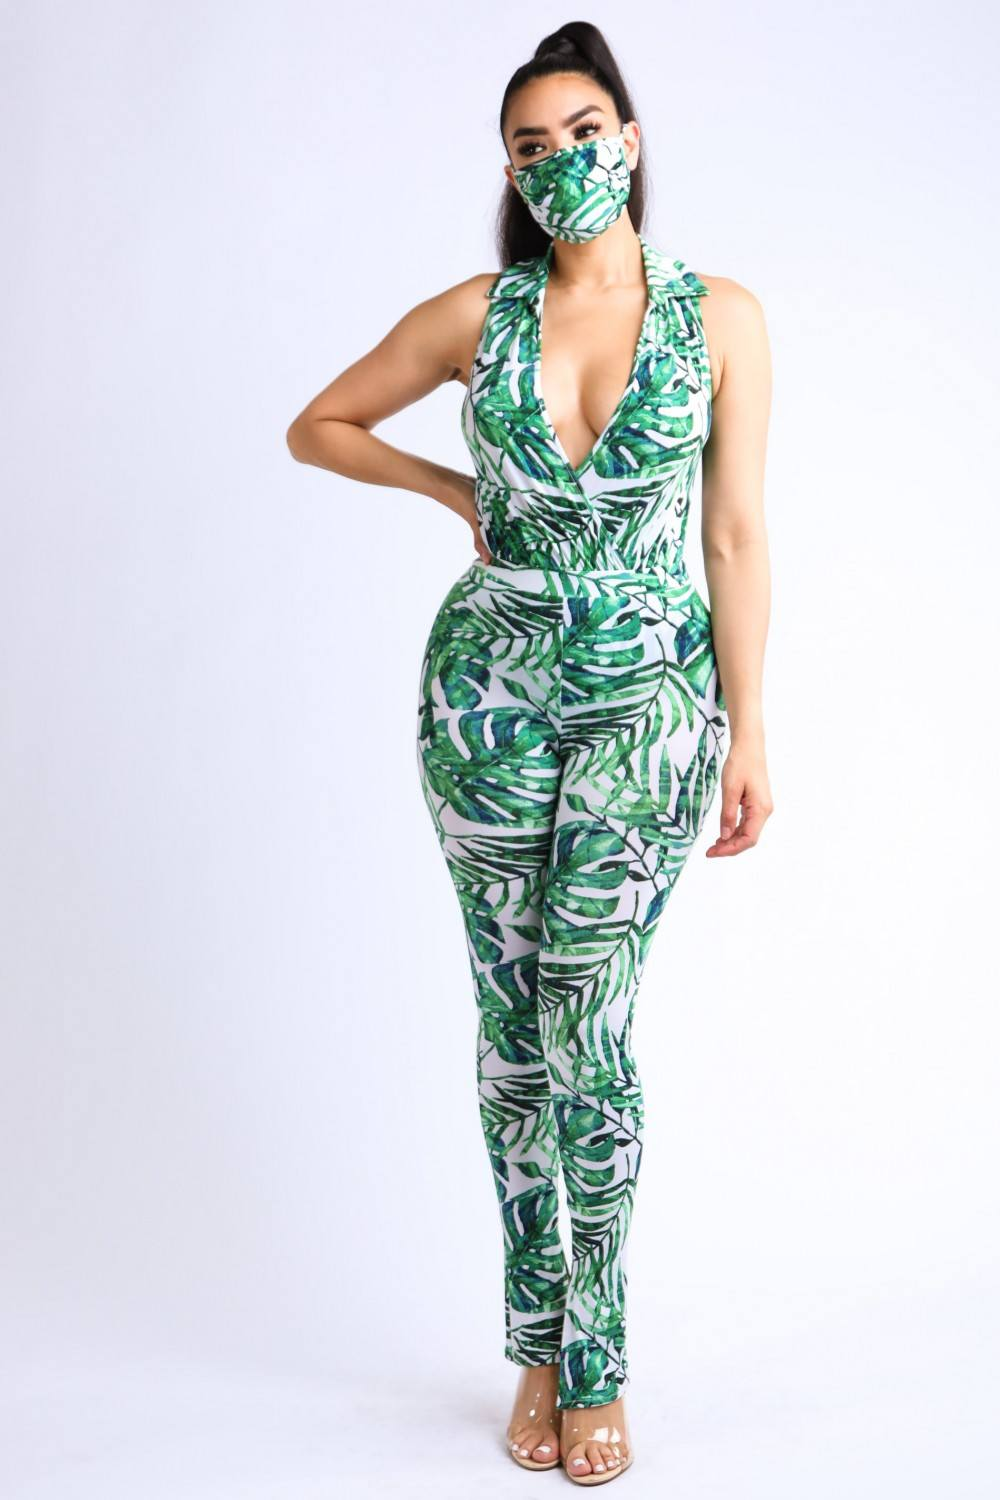 Tropical Printed Collared Bodysuit With Matching Mask-SamiraBoutique